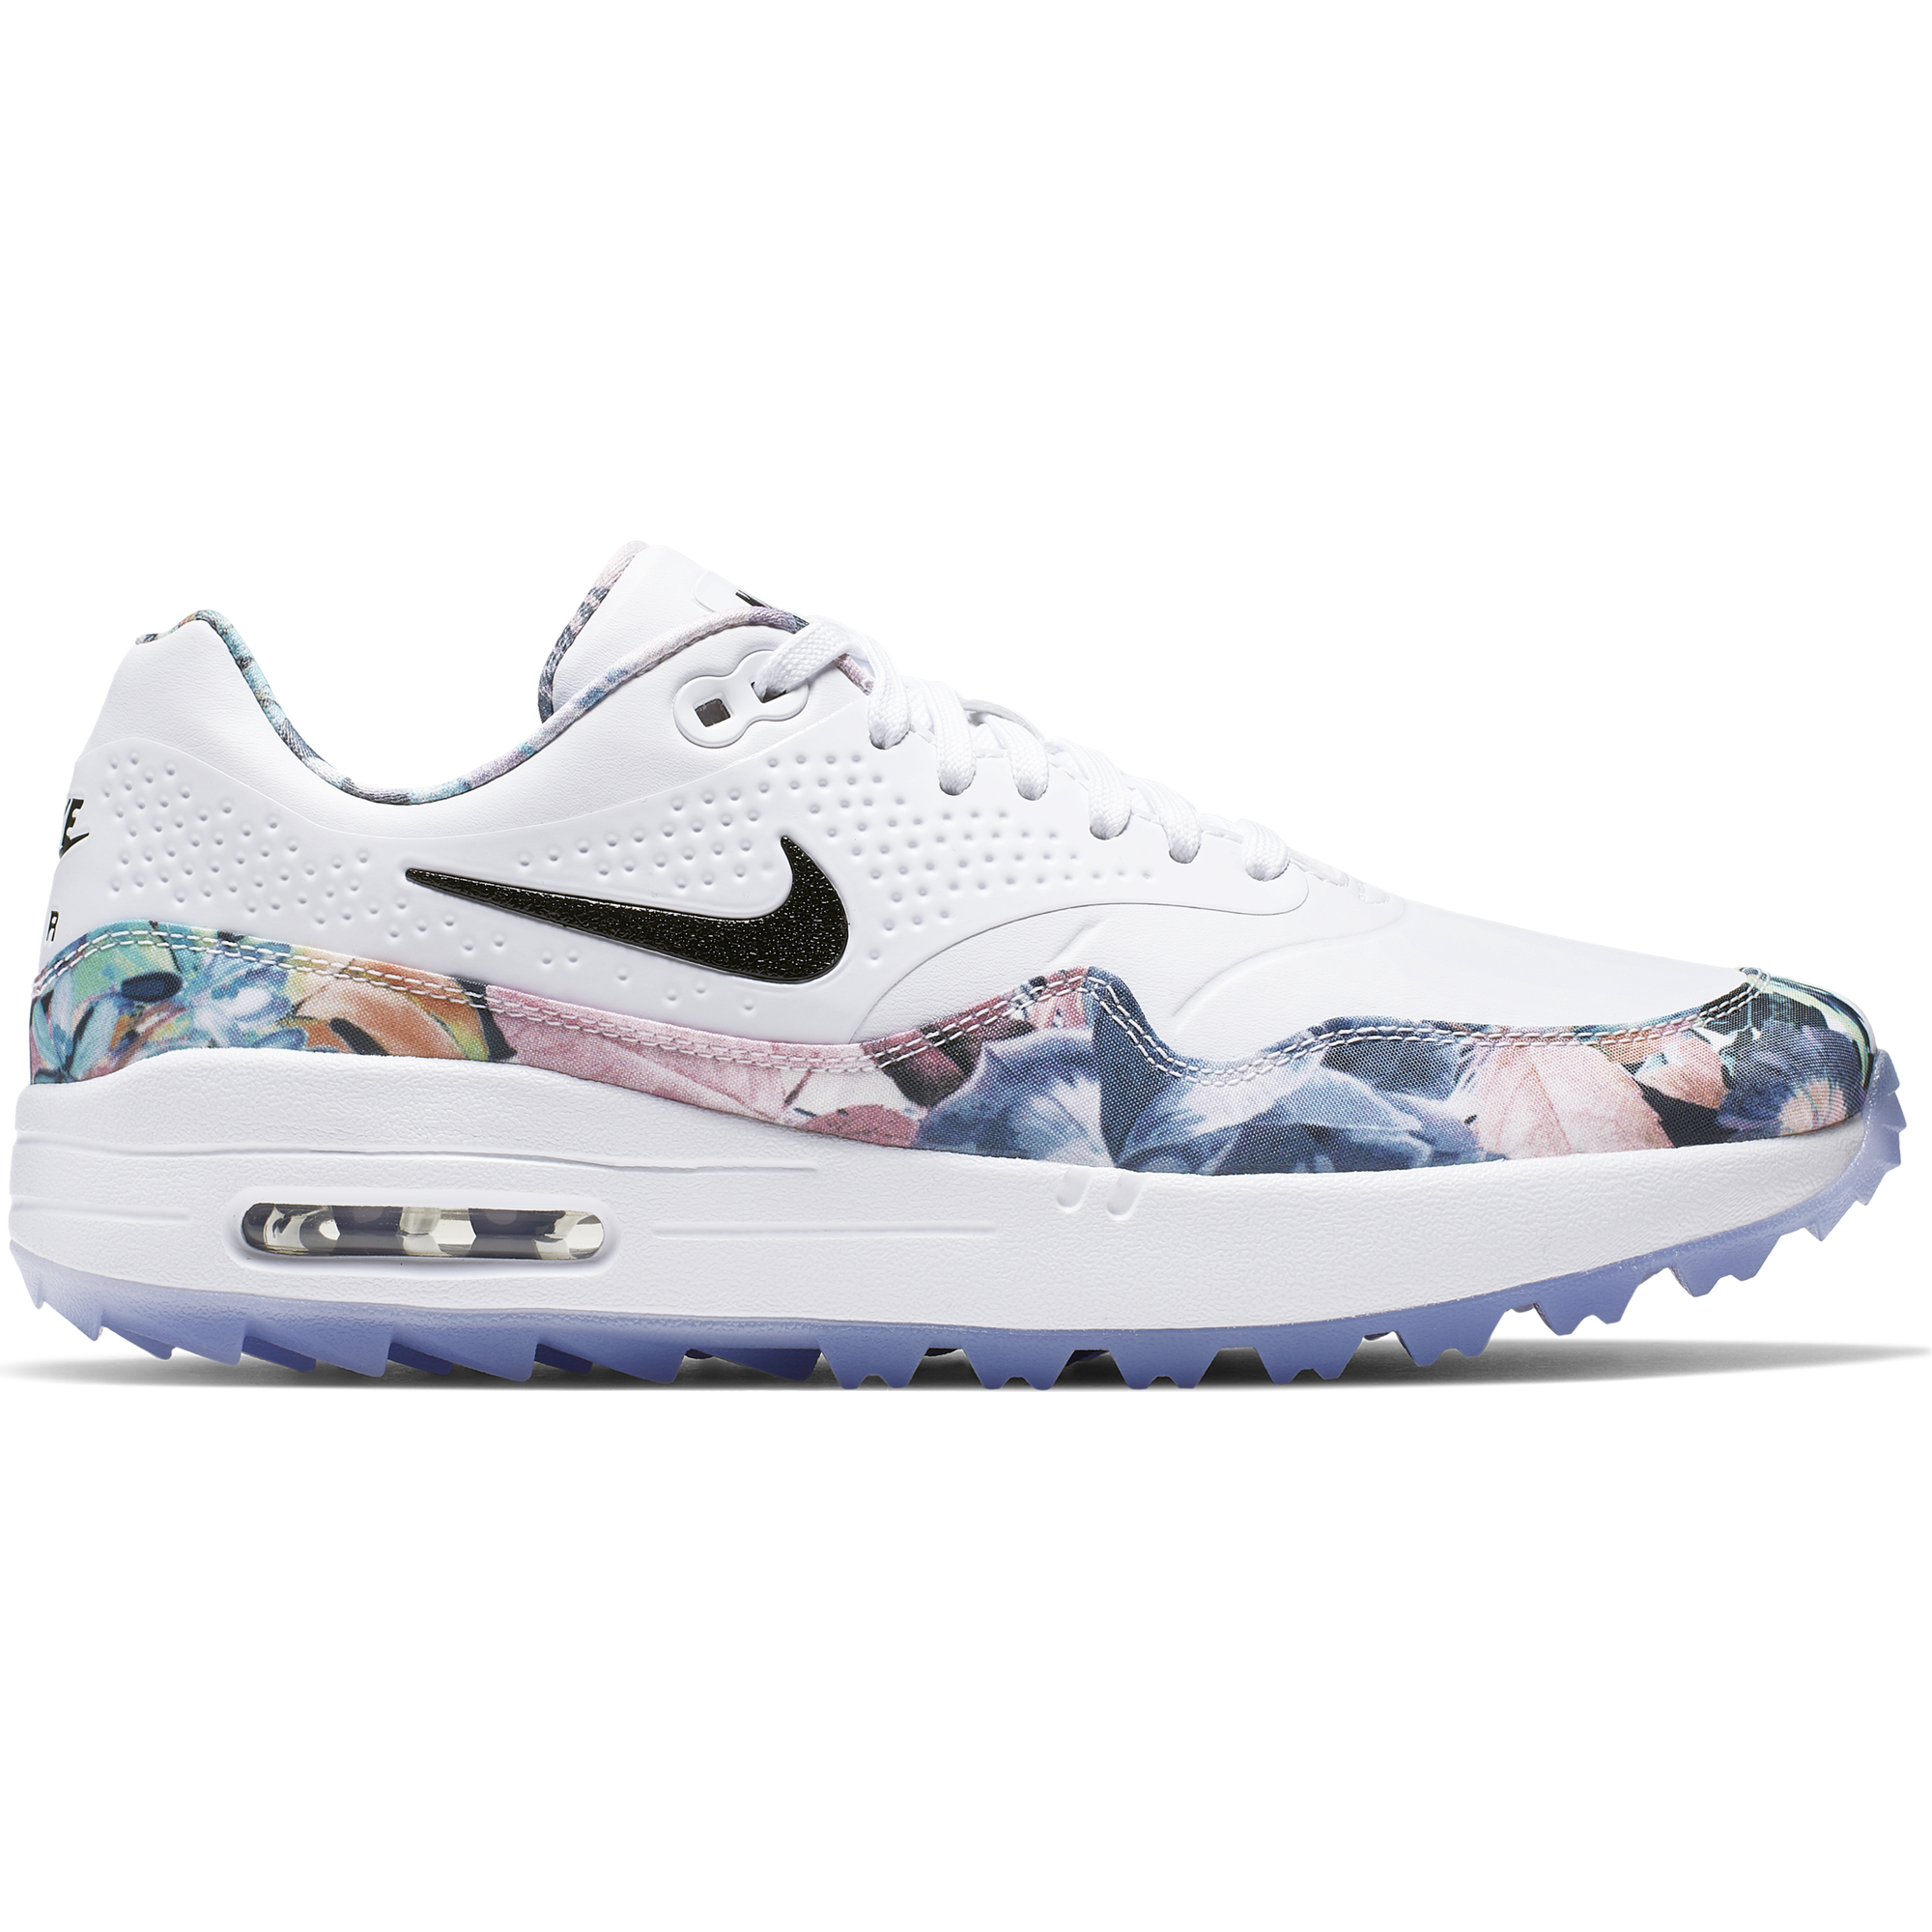 Nike Air Max 1 G Nrg Women S Golf Shoe White Floral Pga Tour Superstore